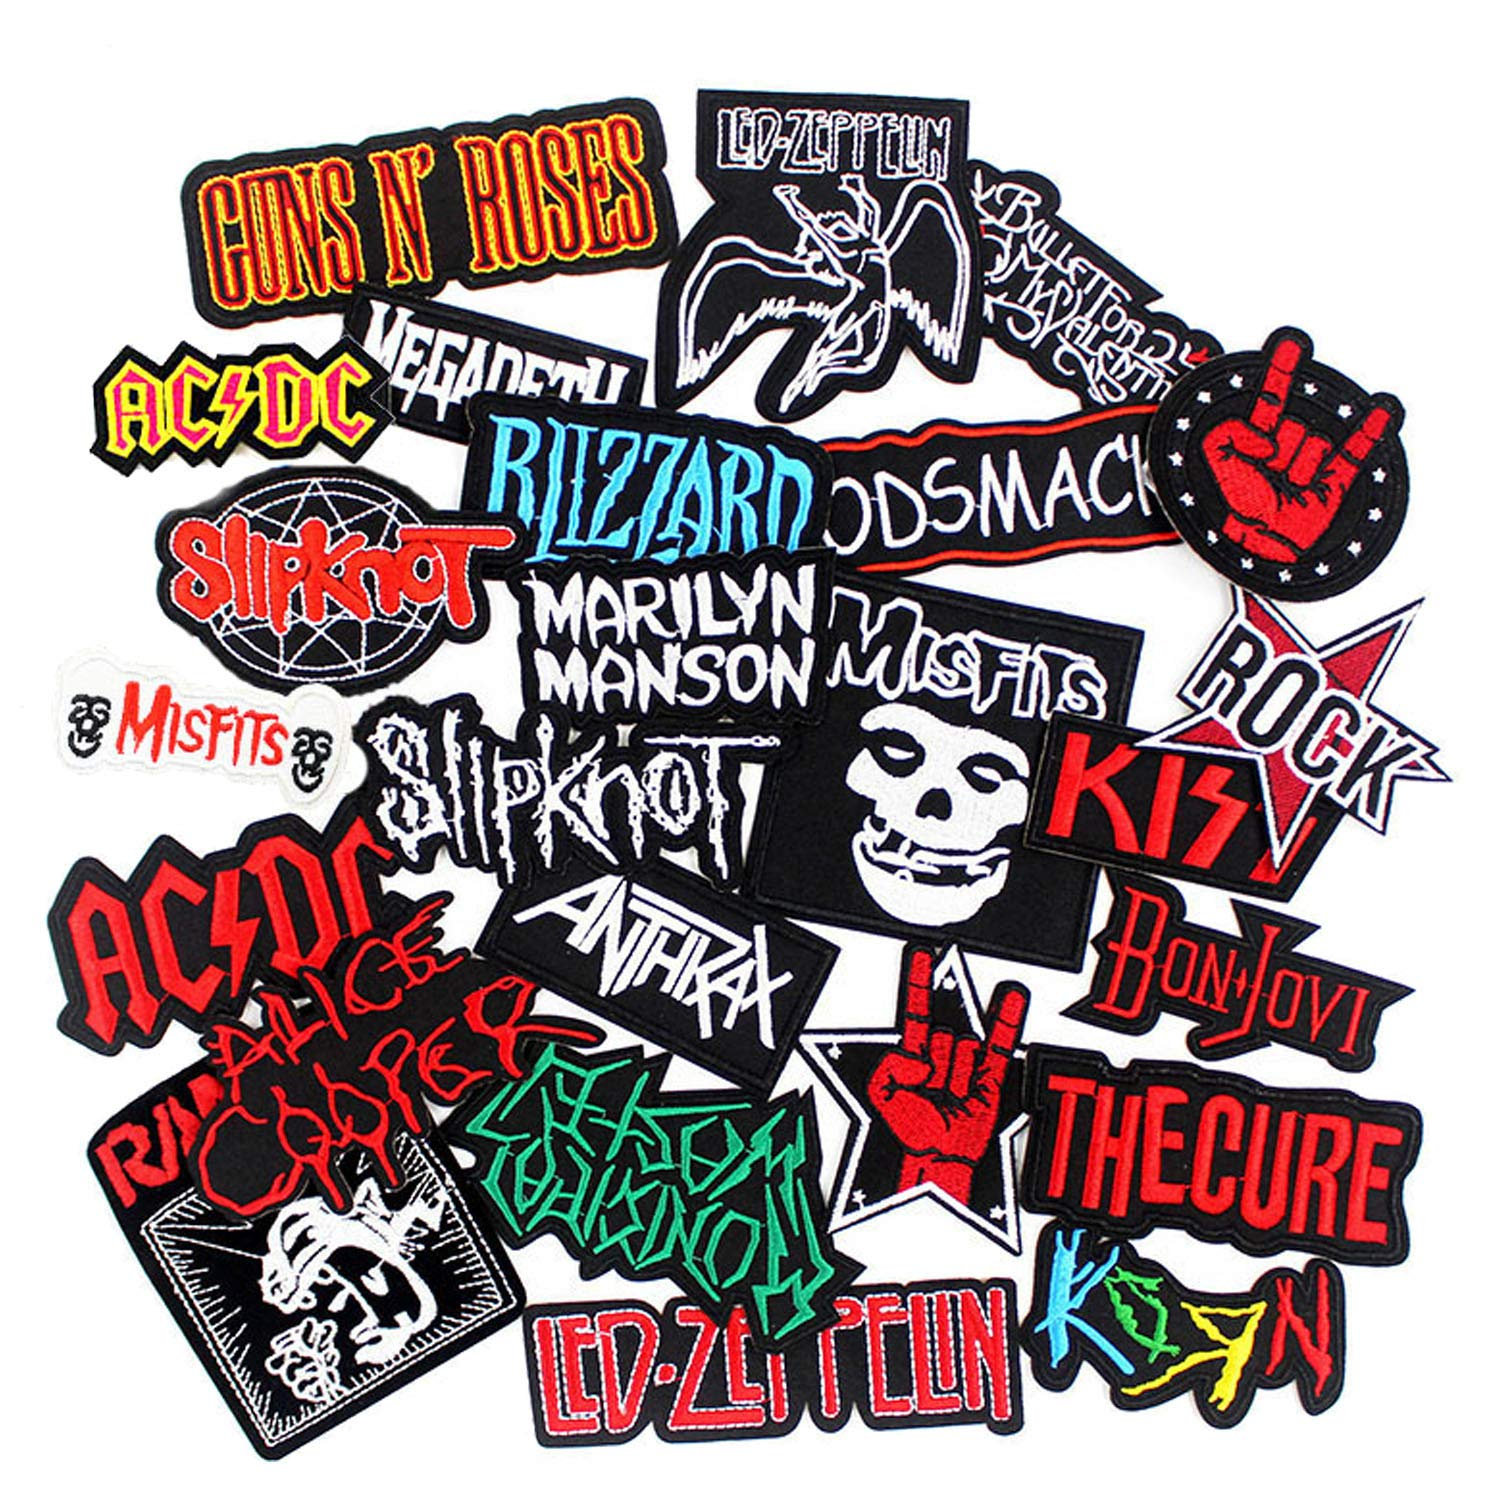 25pcs Bank Rock Music Patches Mixed Band Rock Music Patches Embroidered Badge Punk Hippie Clothes Stickers Iron on for Clothes Jacket Jeans Applique by Wedany